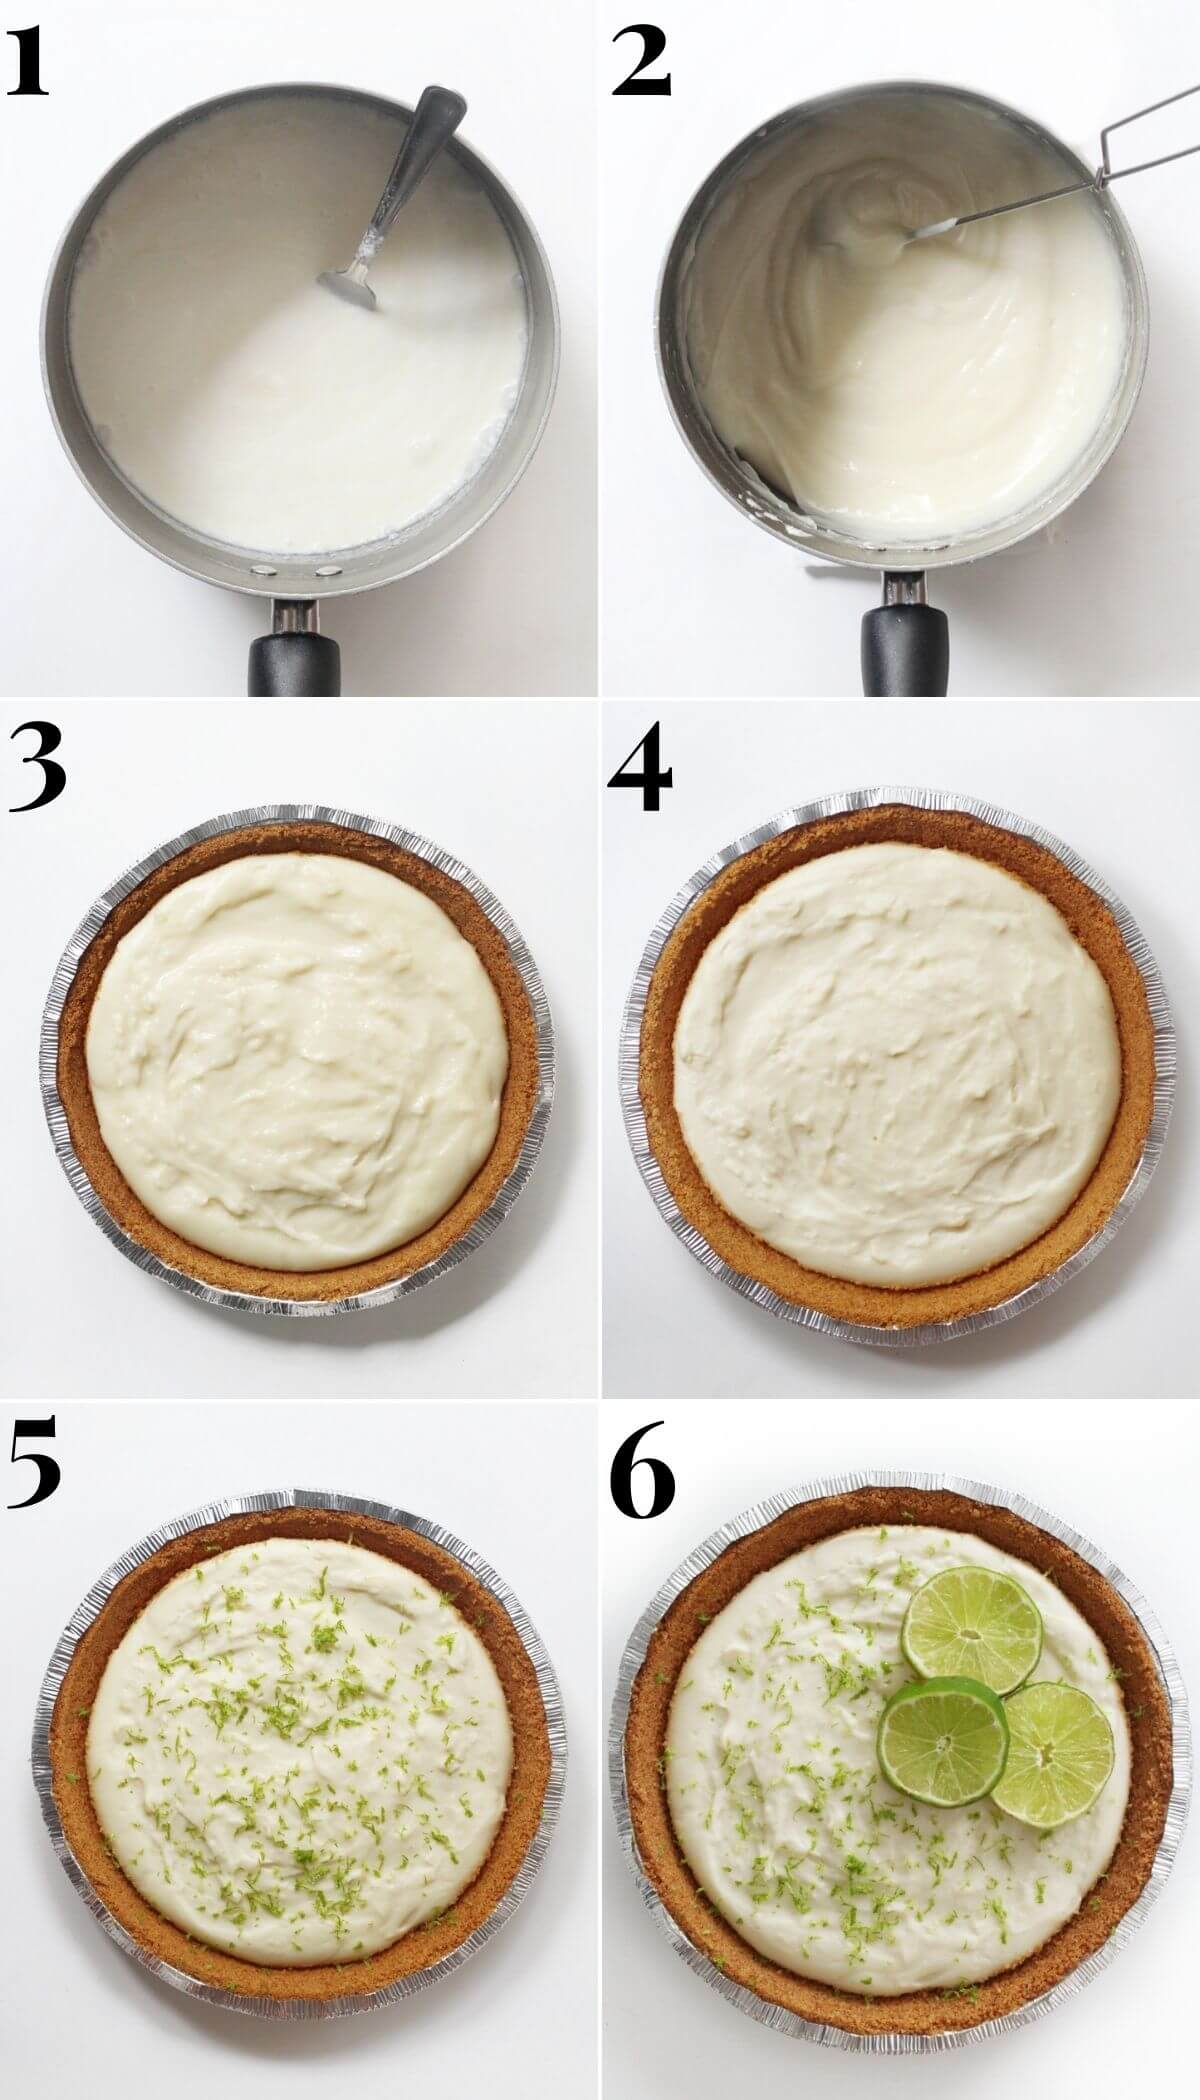 6 step process to make no bake key lime pie from scratch